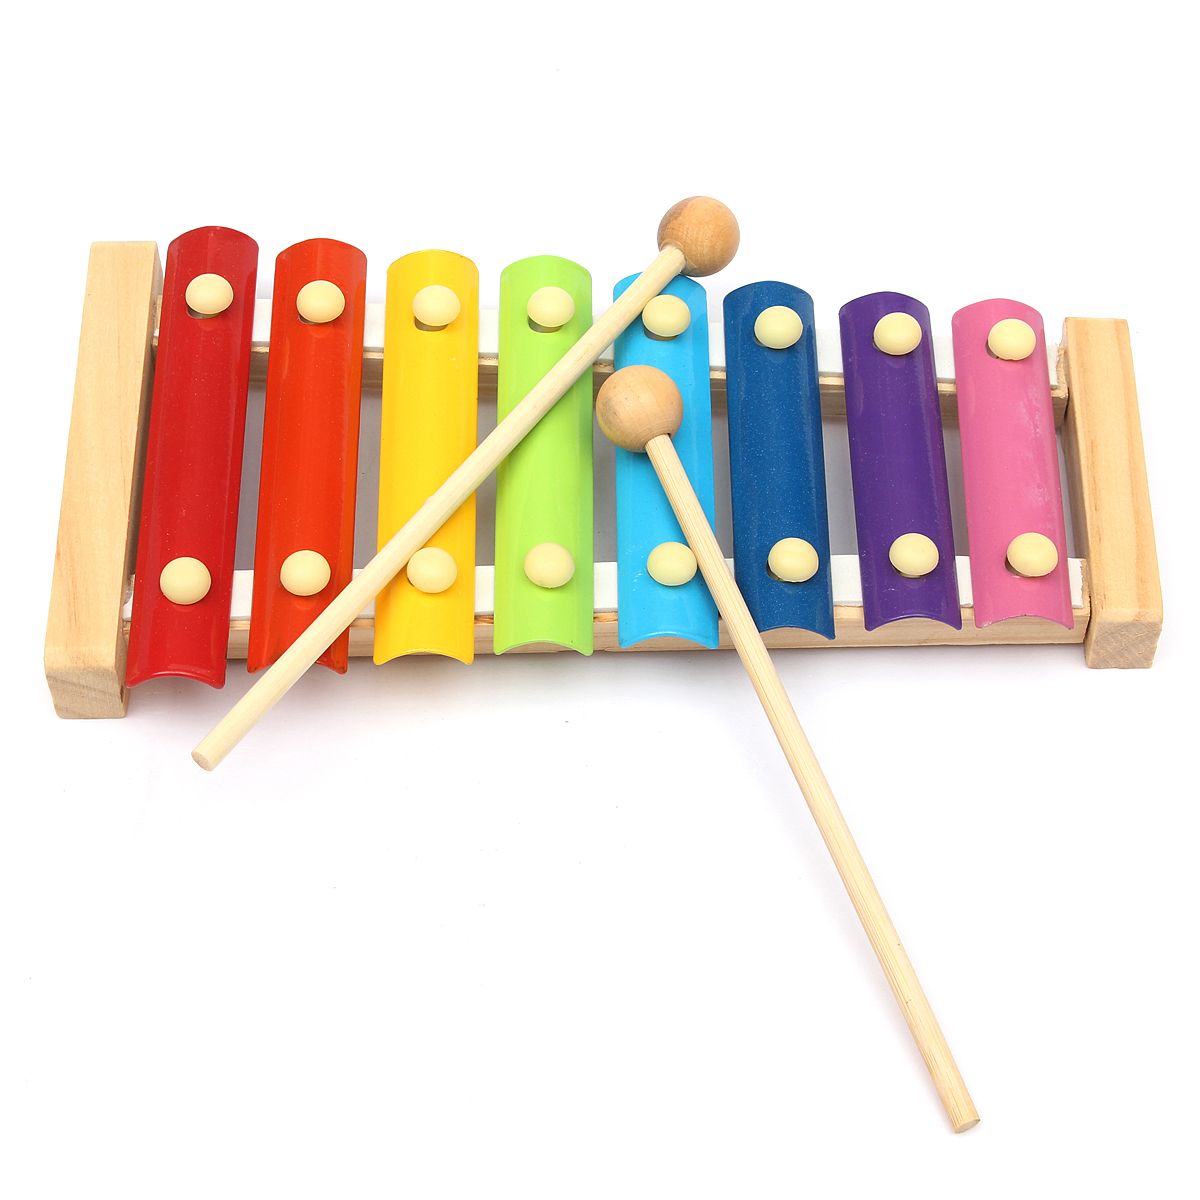 Toy Musical Instrument Brilliant Children Baby Musical Toys Learning Education Wooden Instrument Wisdom Development Toyimprove Kid Sensitive Sounds Sale Price